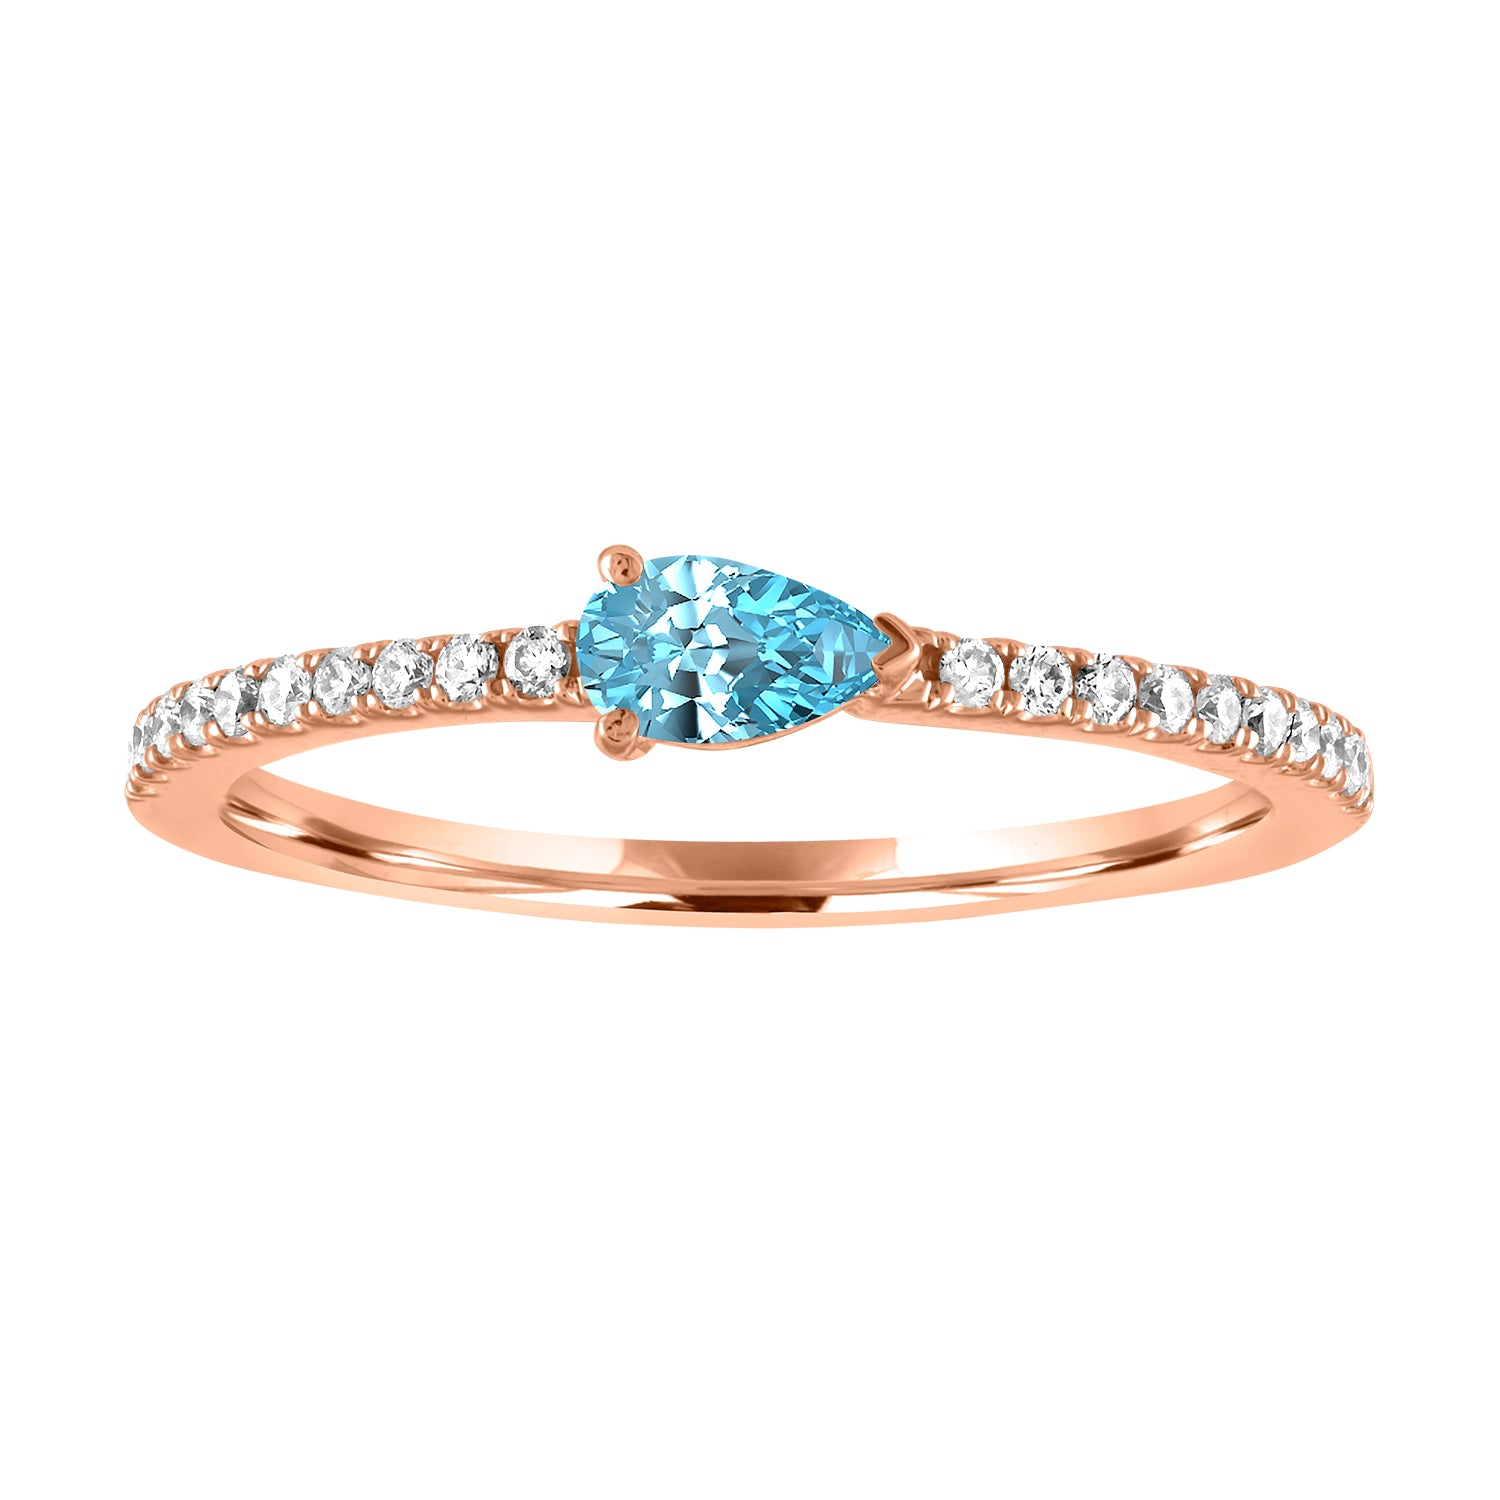 Layla ring with aquamarine pear